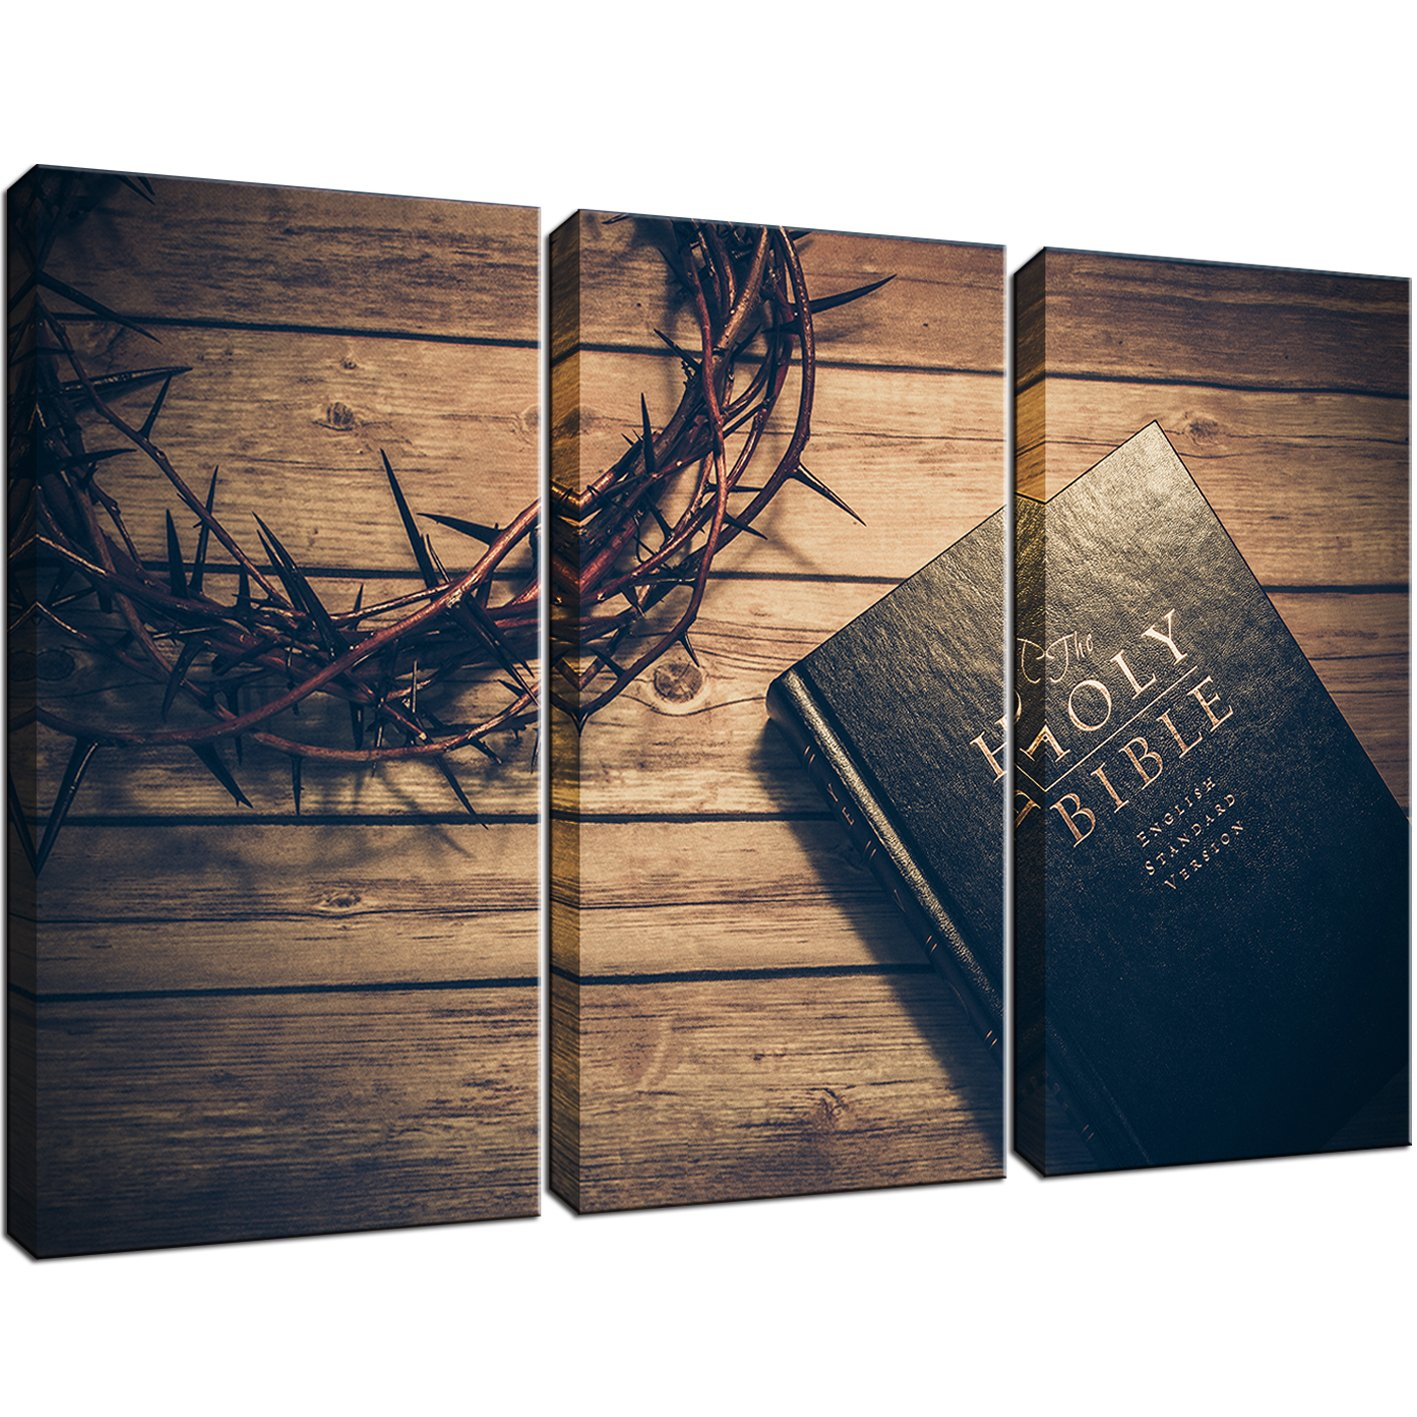 KLVOS - 3 Panels The Christian Bible Painting and Crown of Thorns Posters Religion Pictures for Rustic Home Decor Gift Stretched and Framed Ready to Hang 16''x32''x3